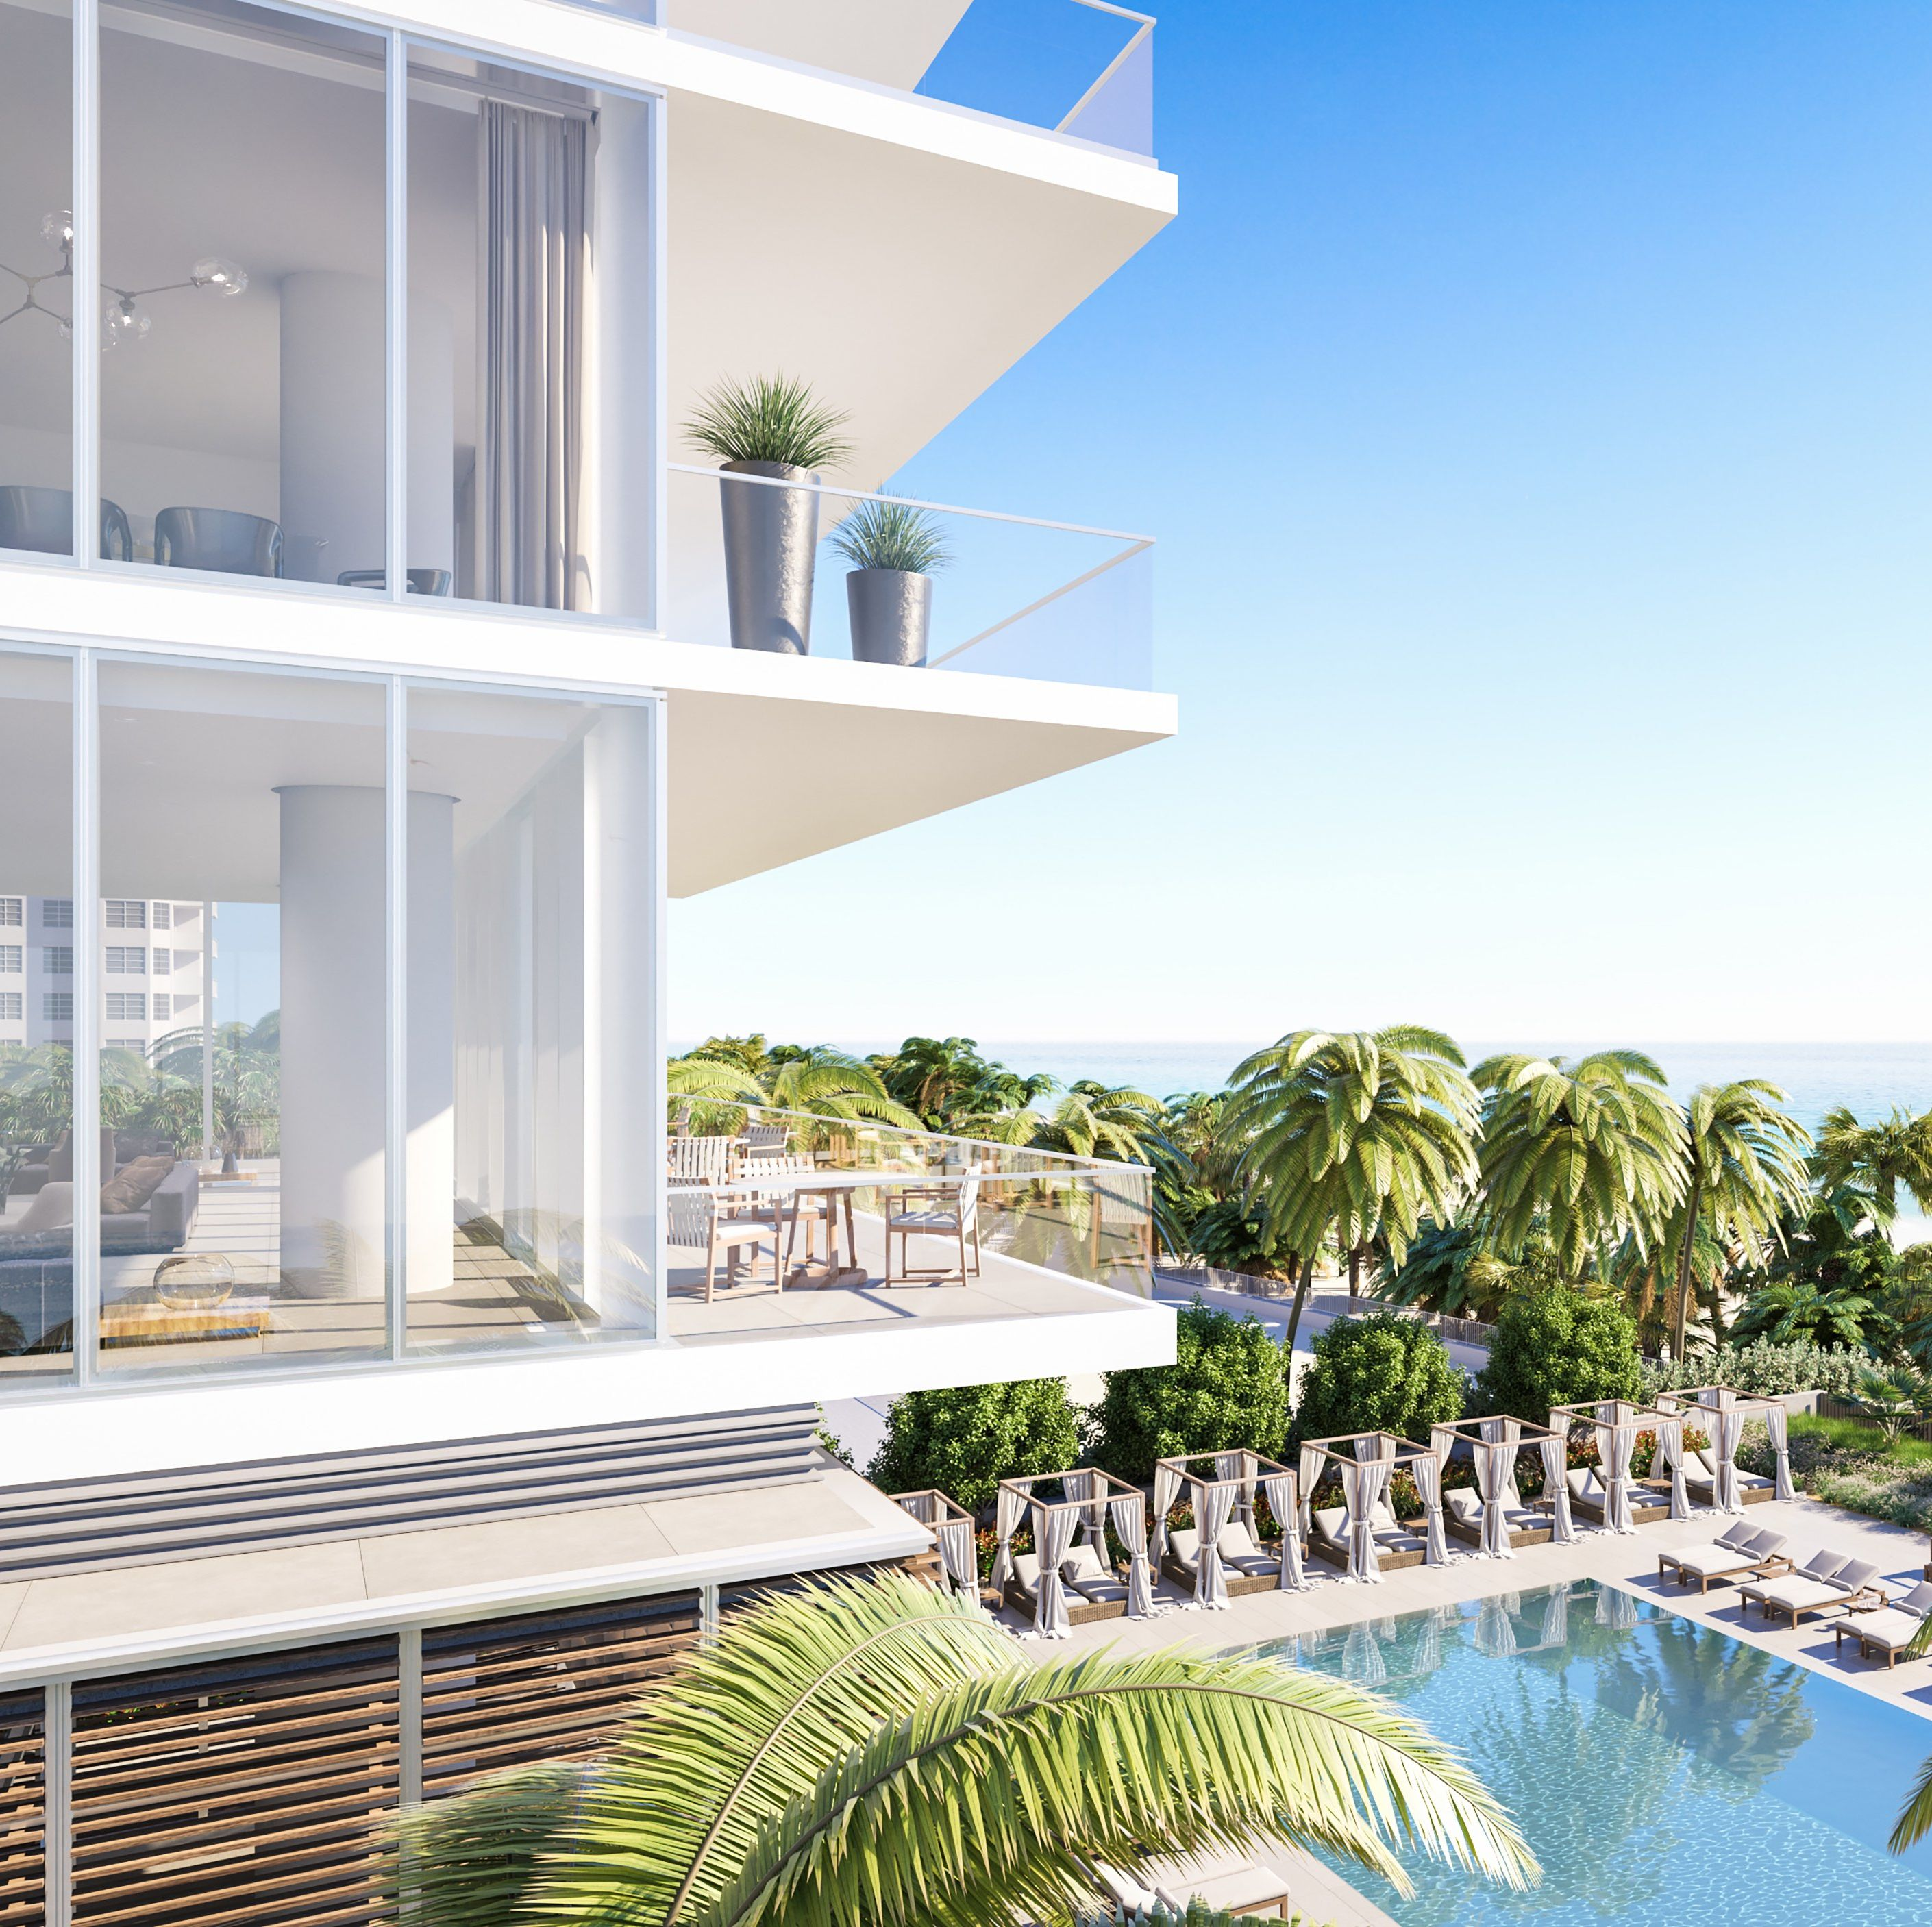 Just Outside Miami, New Development 2000 Ocean Is Redefining Luxury, One Minotti Furnishing at a Time